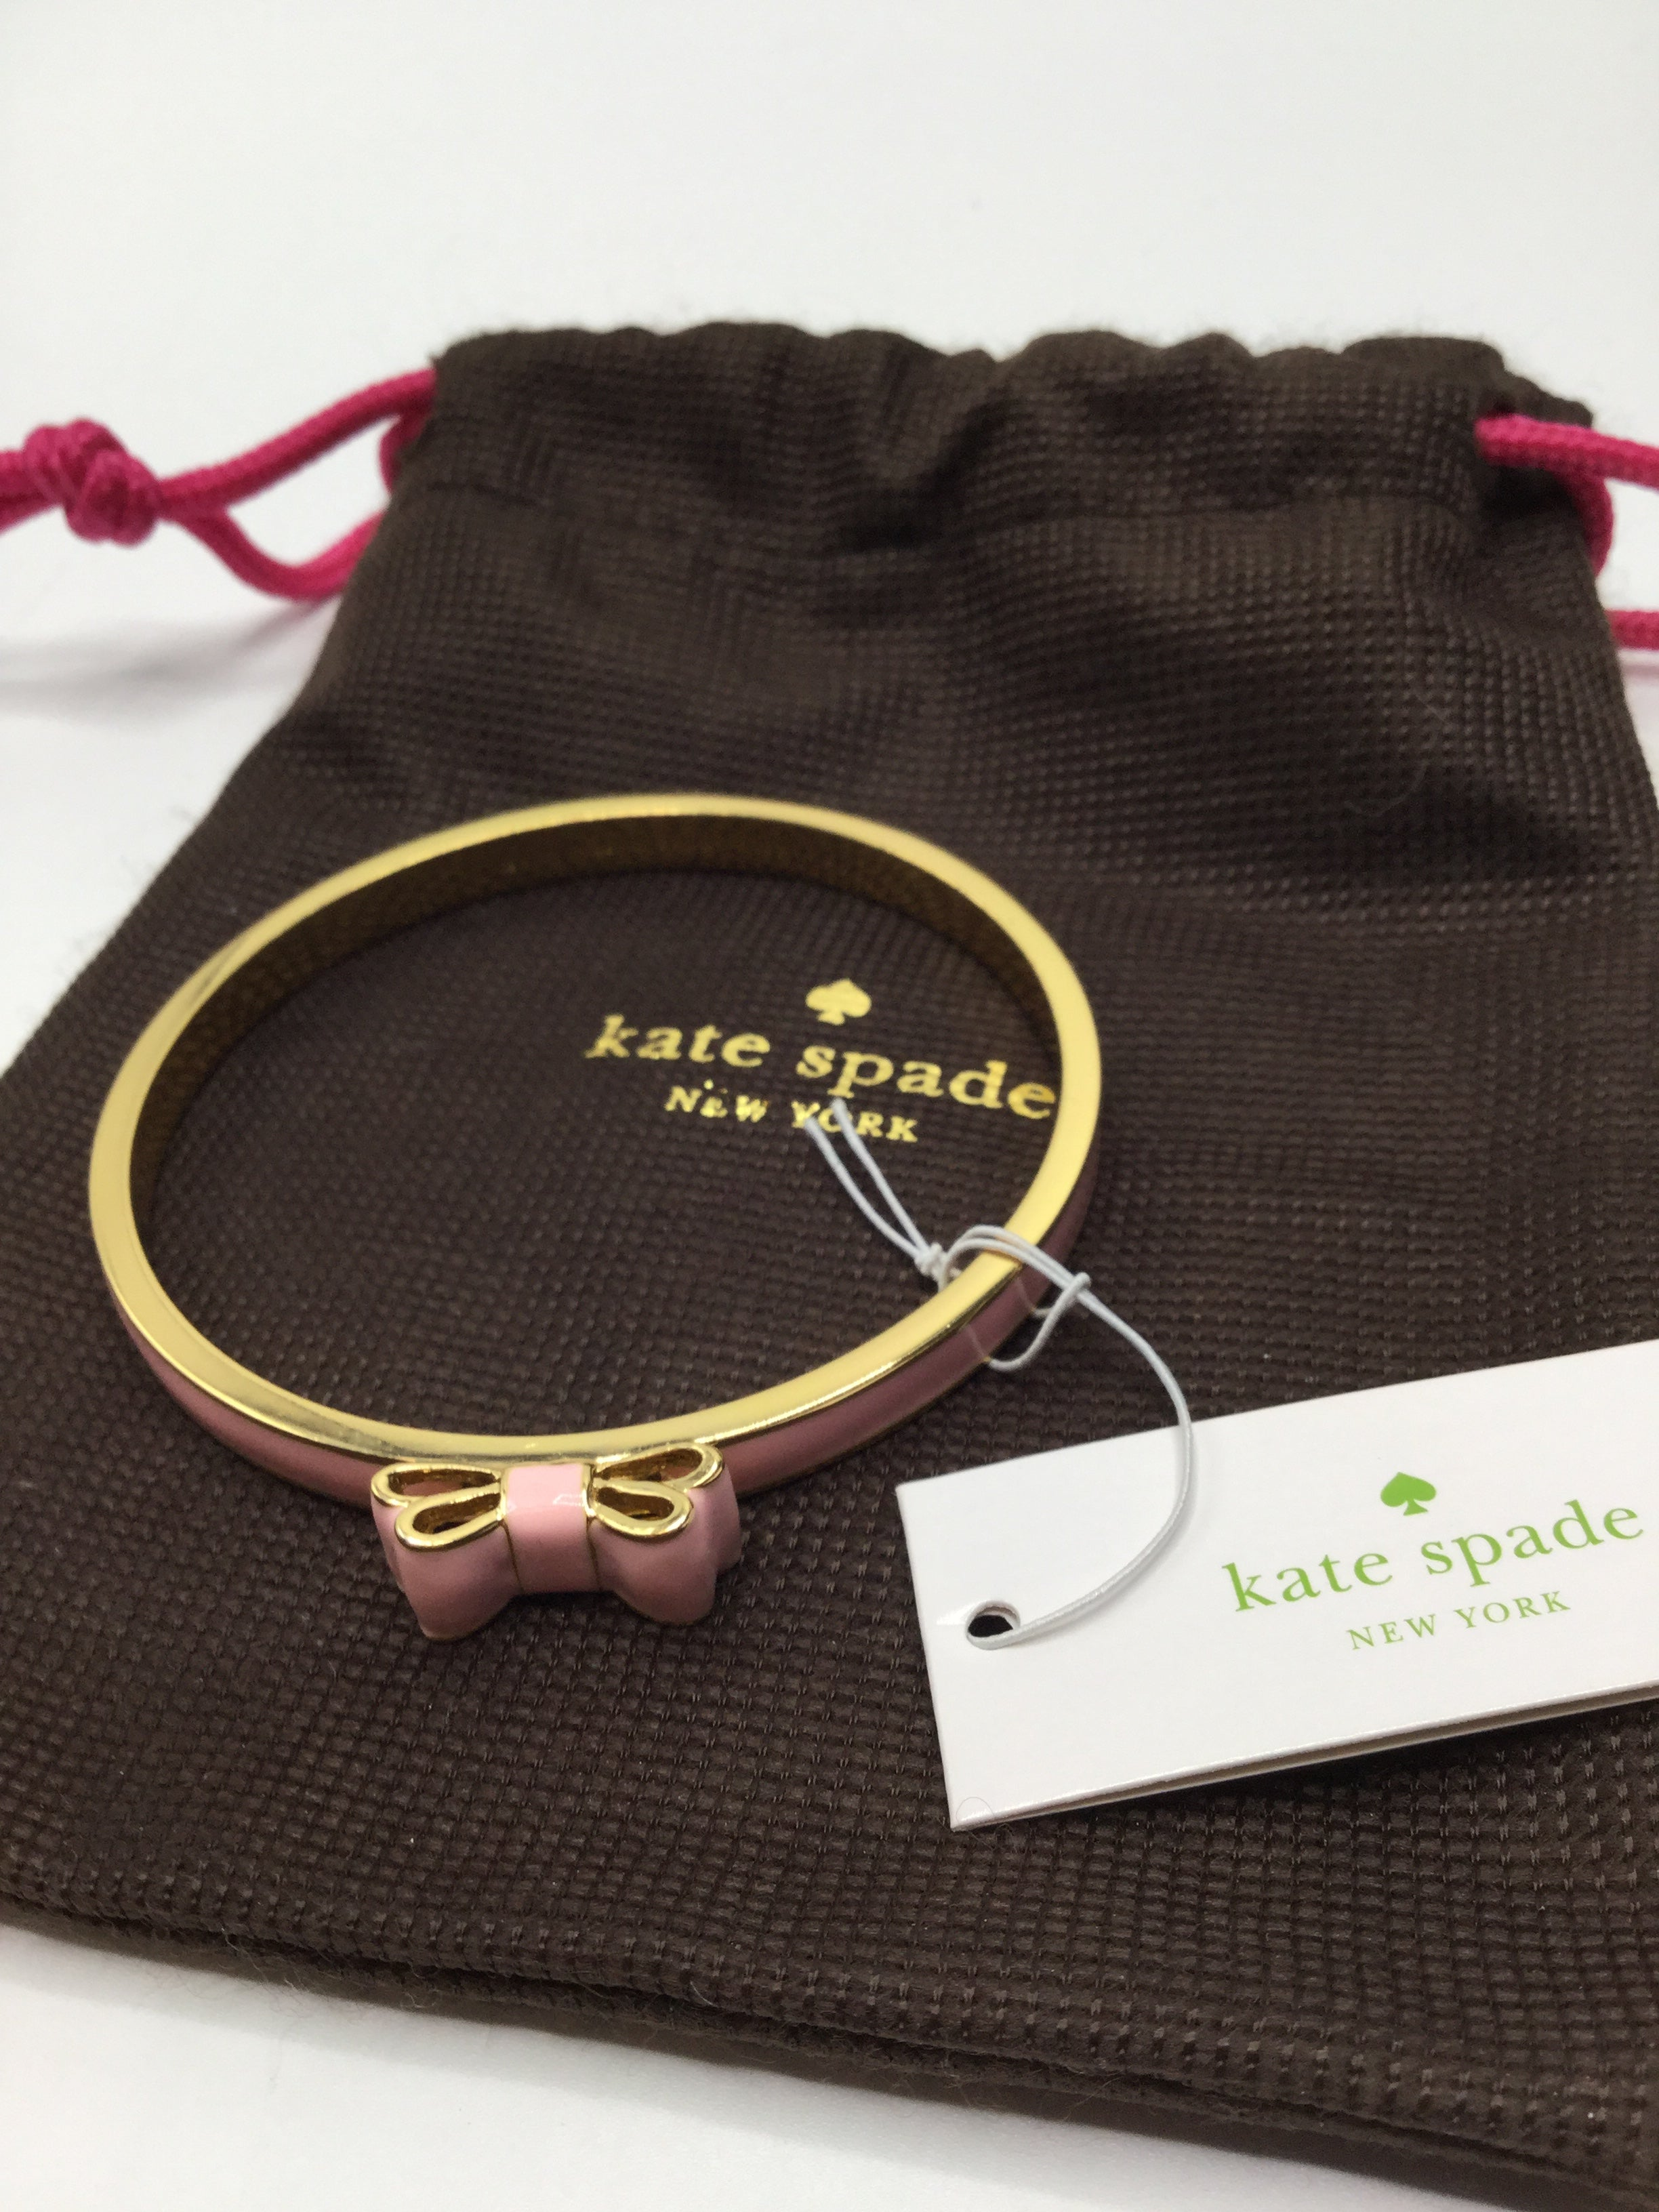 Kate Spade Moon River Pink Bow Bracelet, NWT - BRAND NEW WITH TAGS ON BRACELET